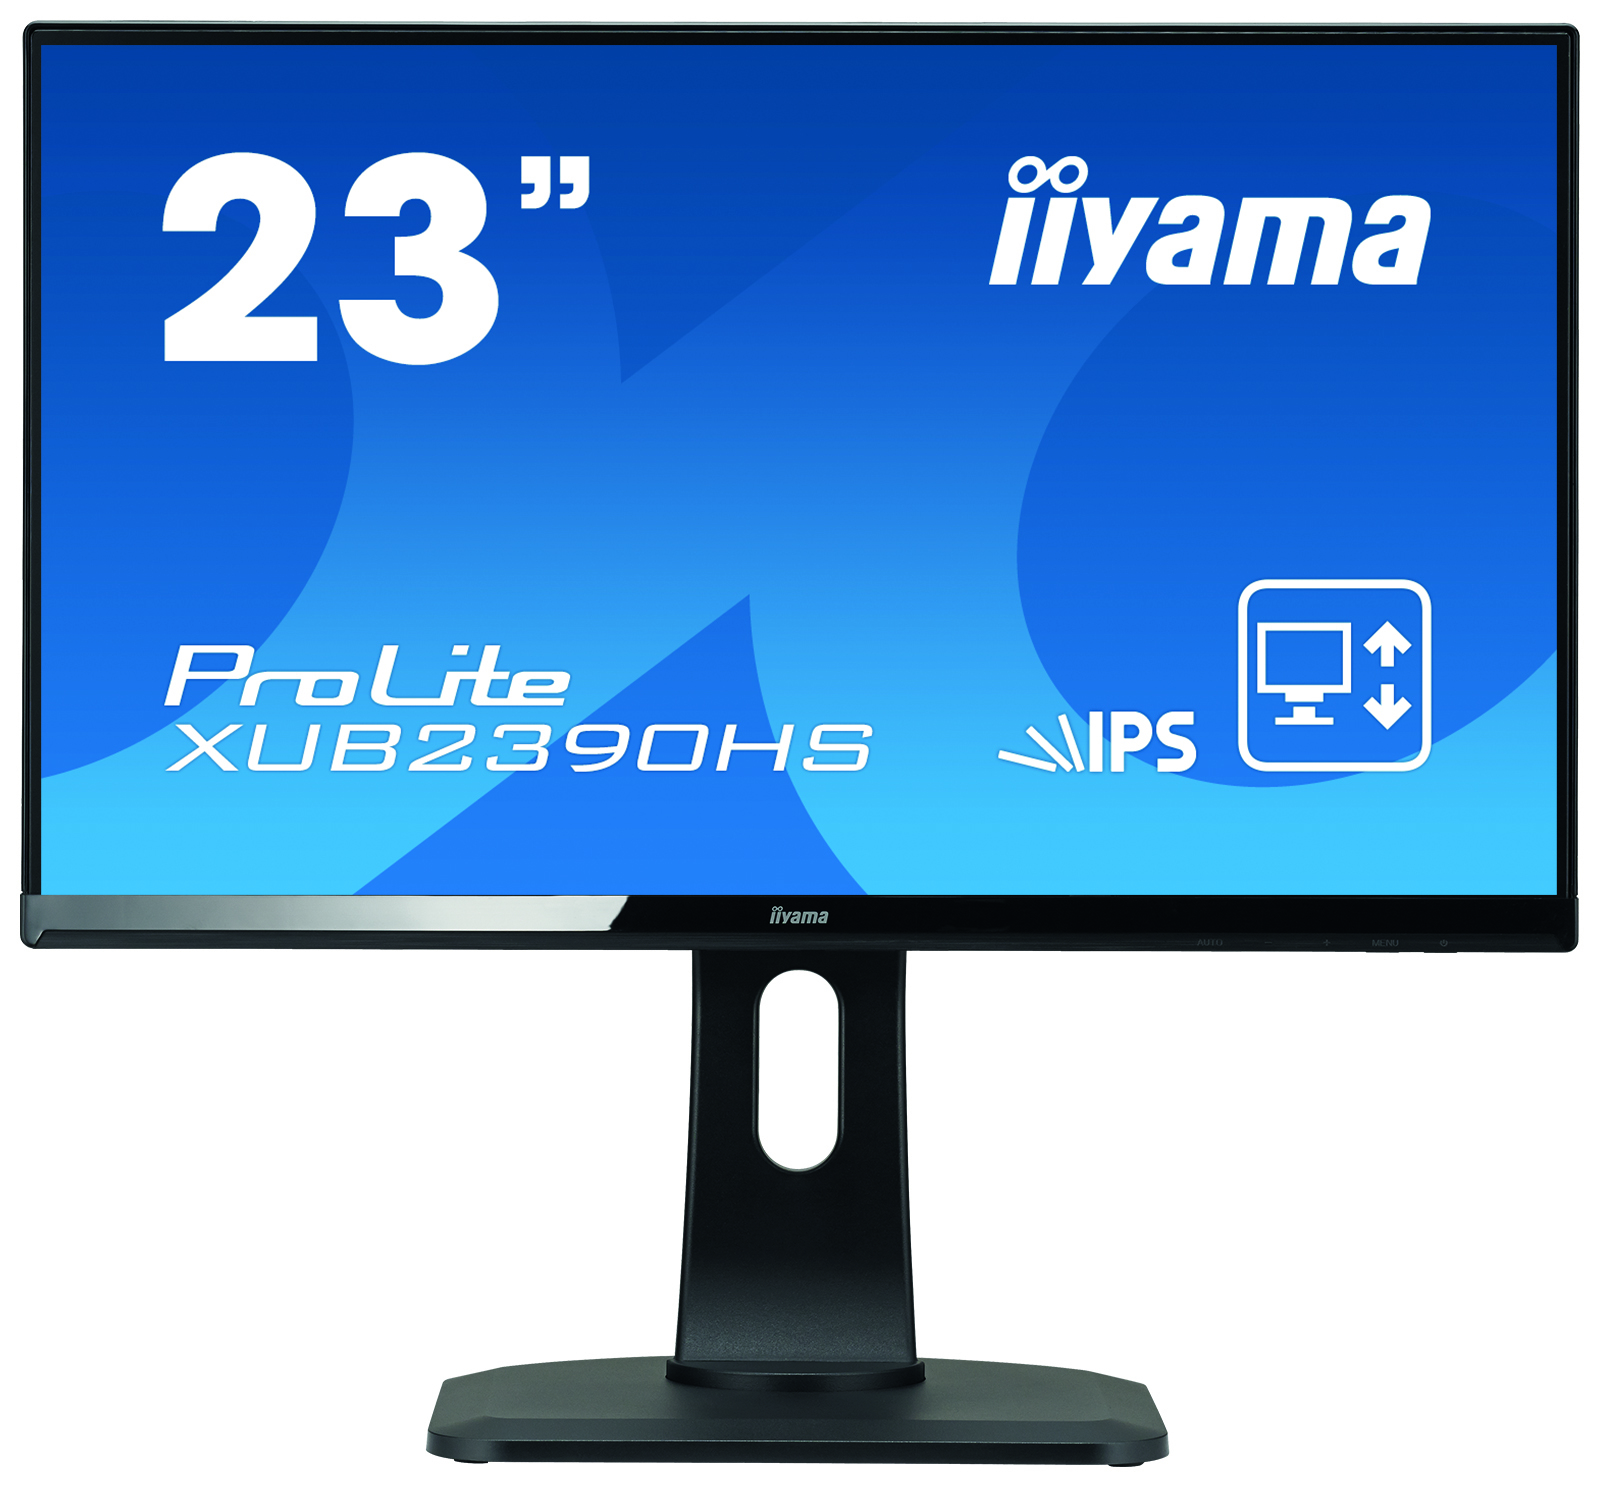 "Iiyama Prolite XUB2390HS-B1 23"" IPS Ultra Slim Bezel, Height Adjustable IPS, 5ms, 1 X VGA, 1 X HDMI, 1 X DVI-D, Speakers XUB2390HS-B1 - C2000"